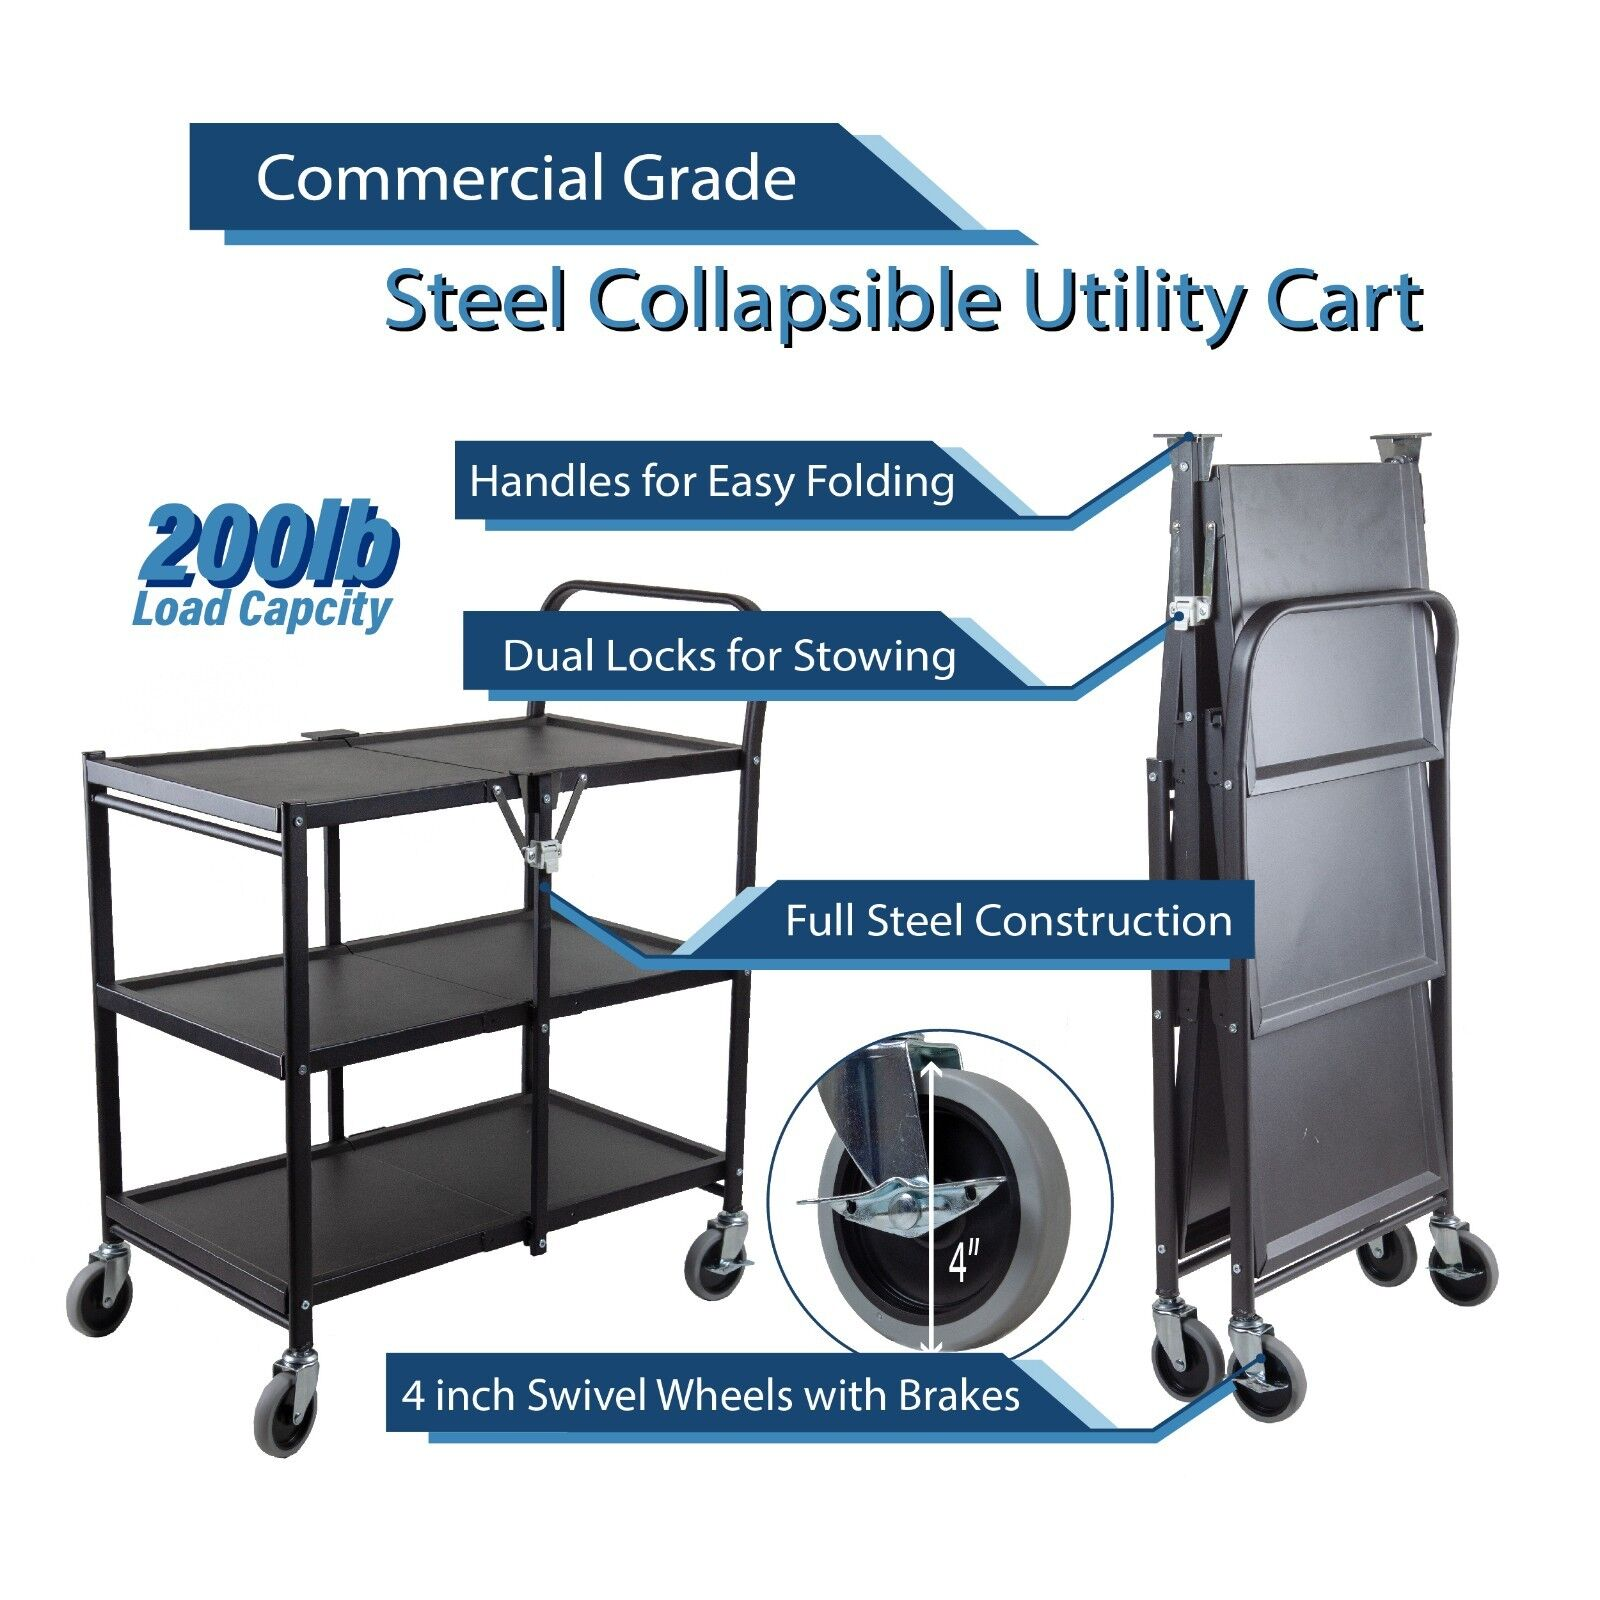 3 Tier Heavy Duty Metal Foldable Commercial Grade Utility Cart with Wheels